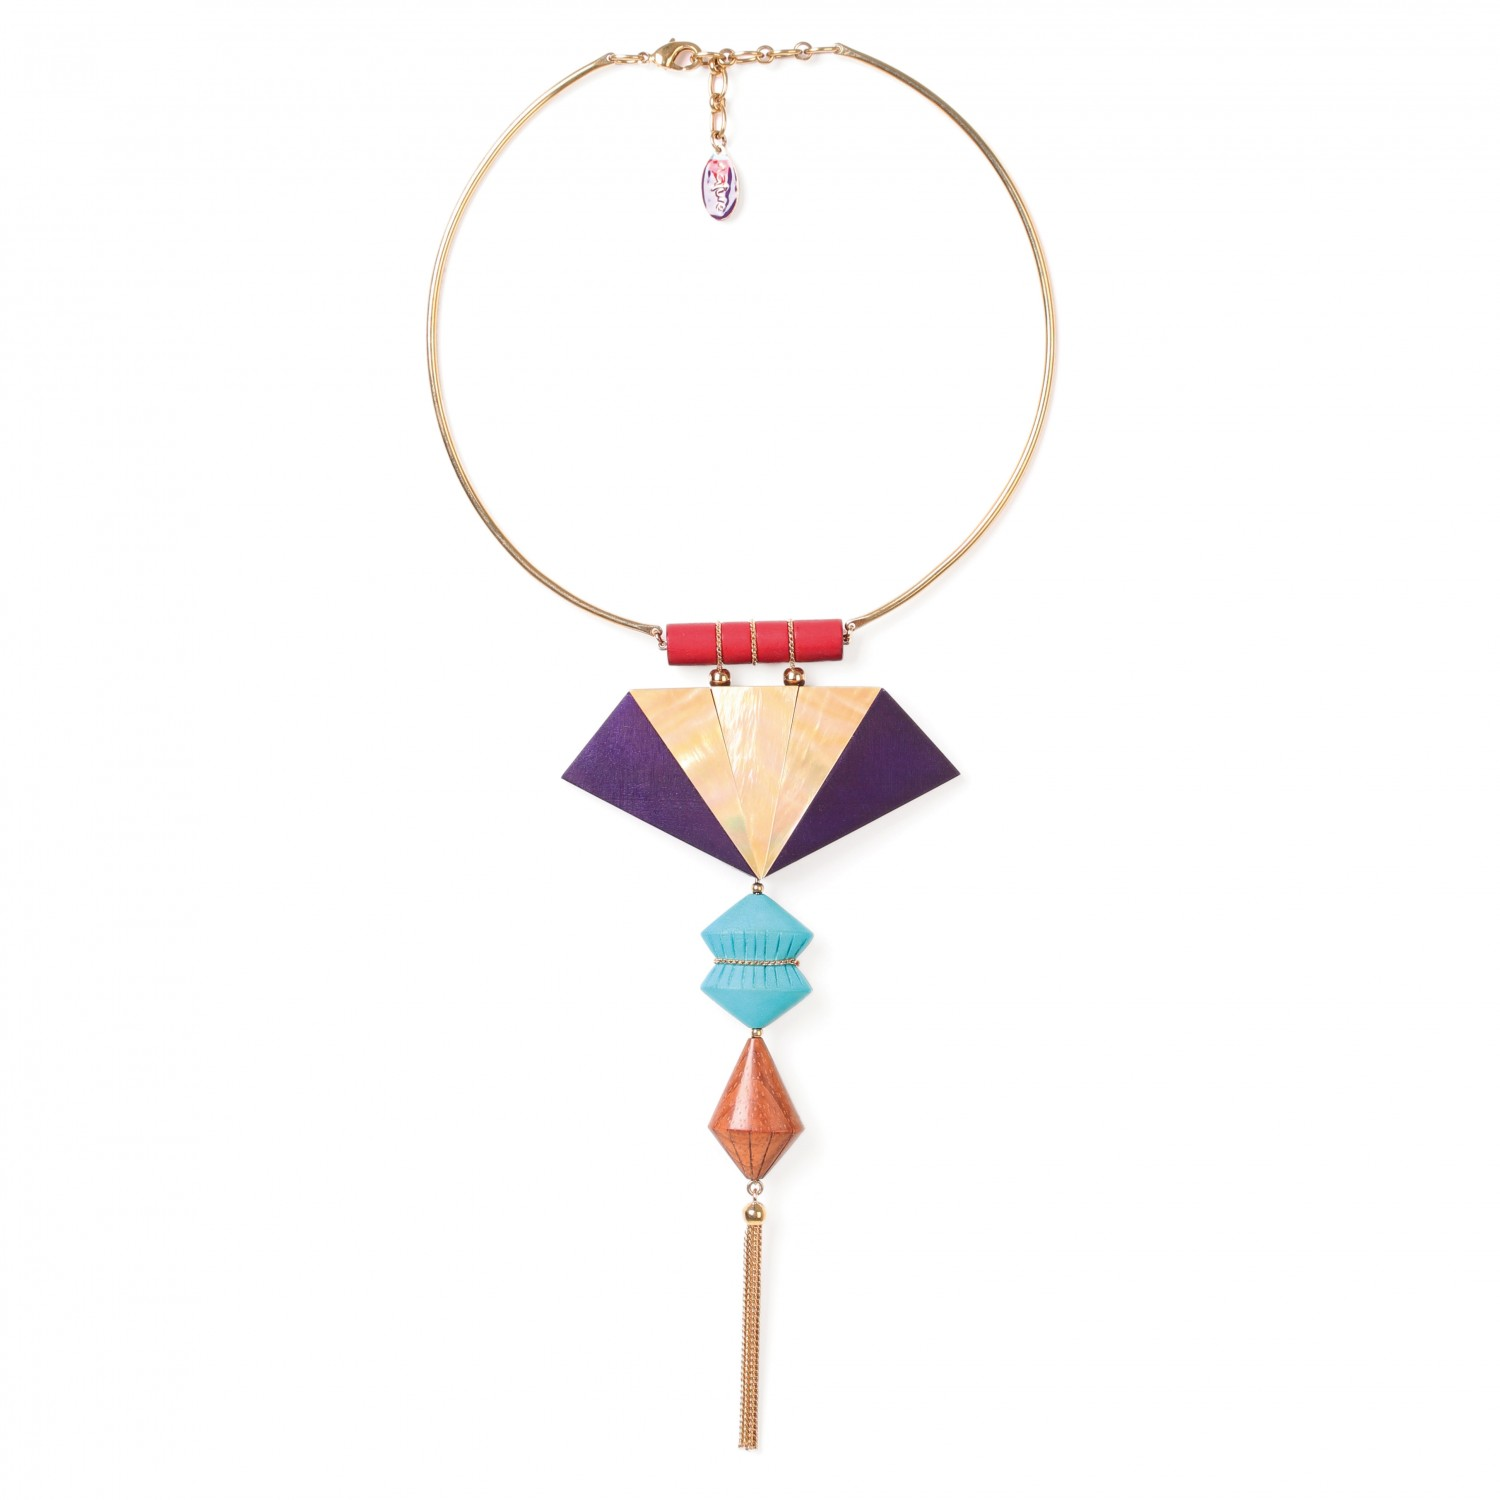 ARTY TOTEM LE collier